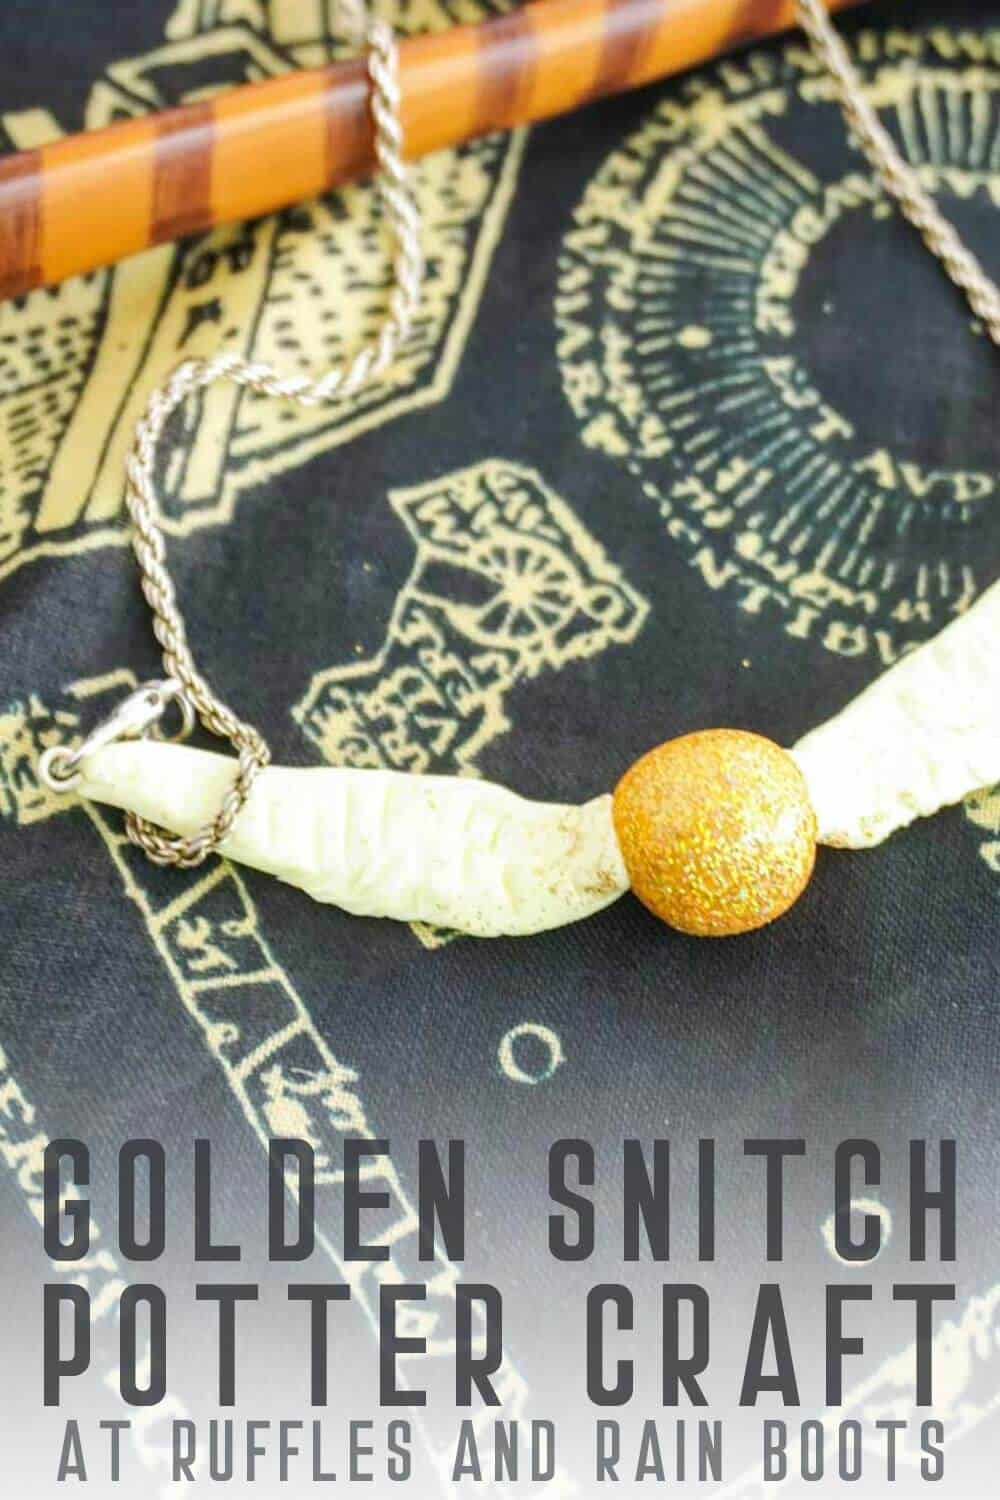 Harry Potter Golden Snitch Craft for Kids with text which reads golden snitch potter craft